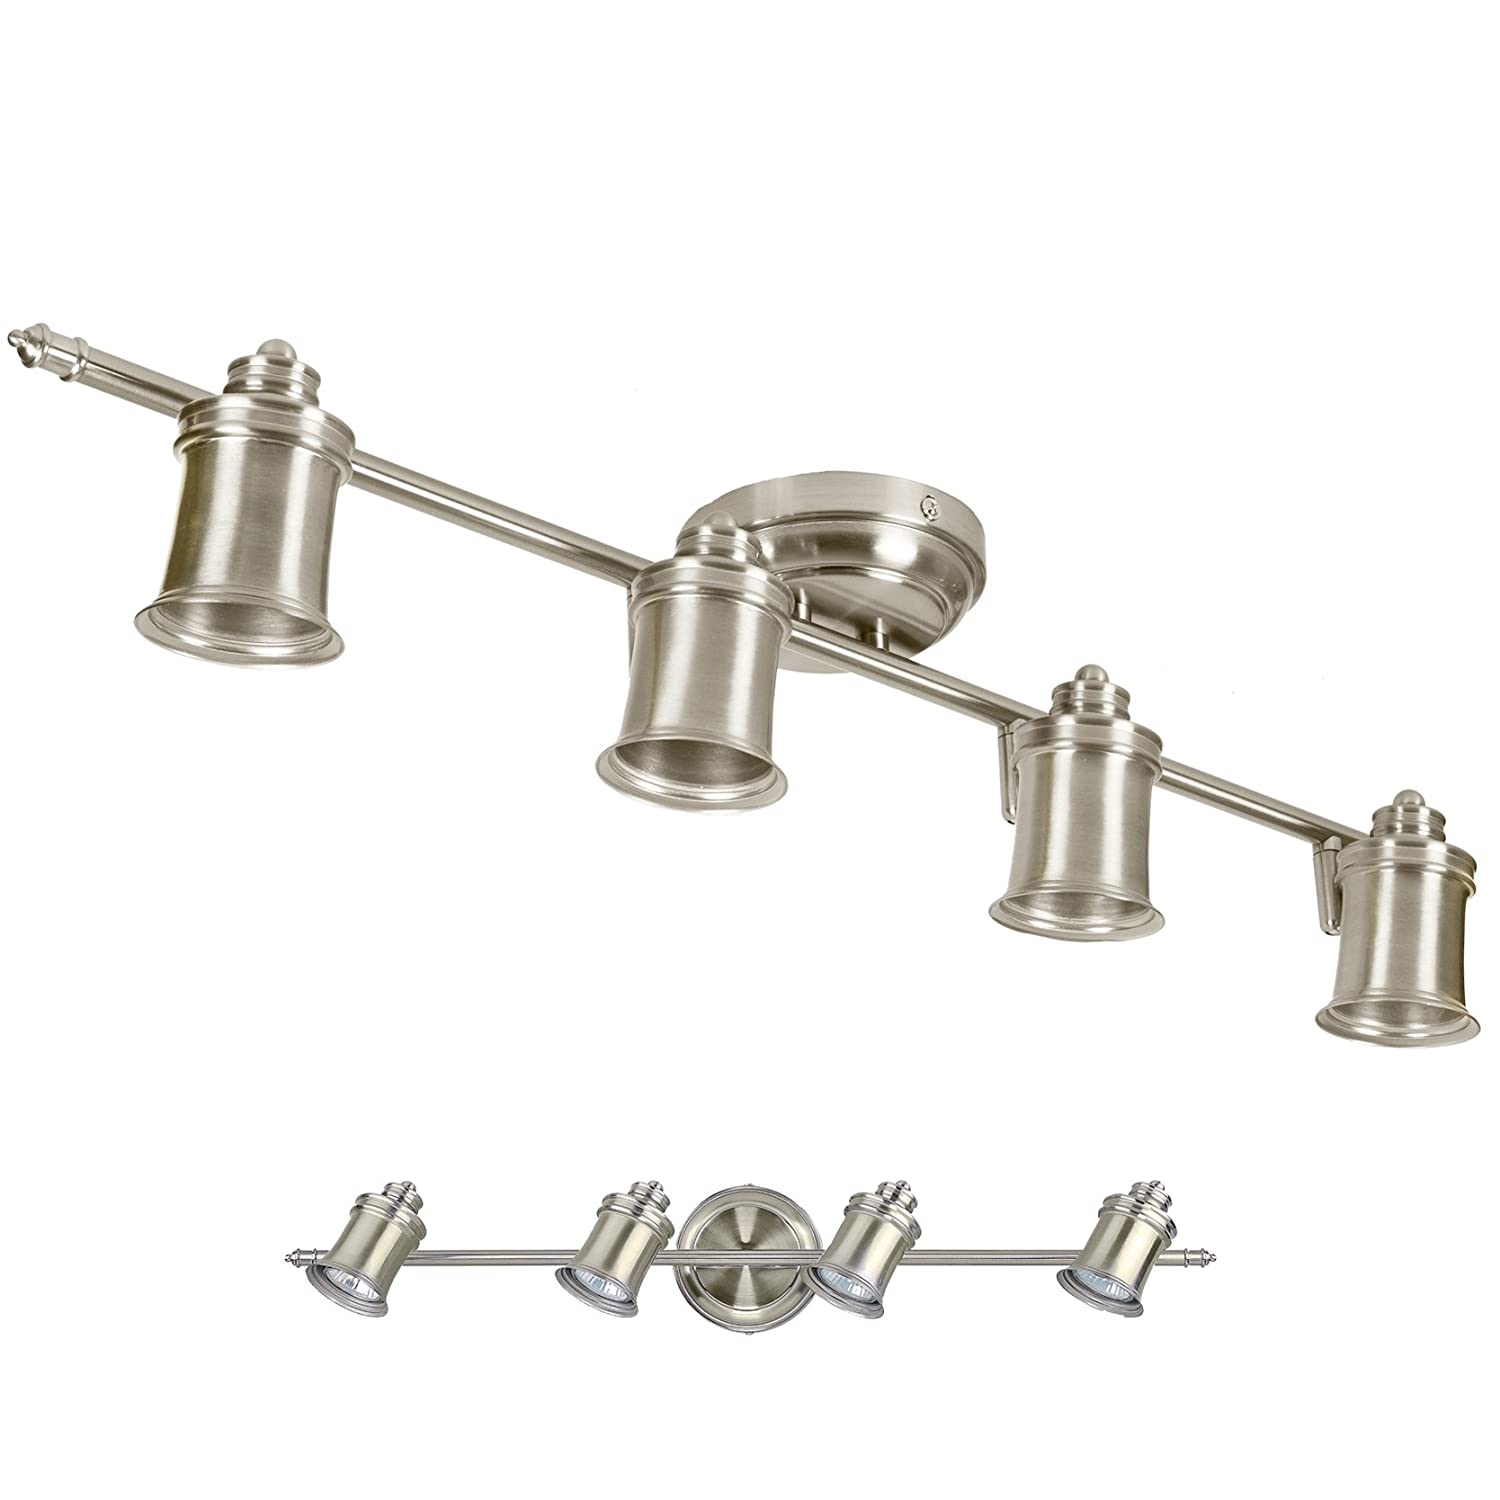 Brushed Nickel Light Track Lighting Ceiling Or Wall Adjustable - 4 bulb kitchen light fixture